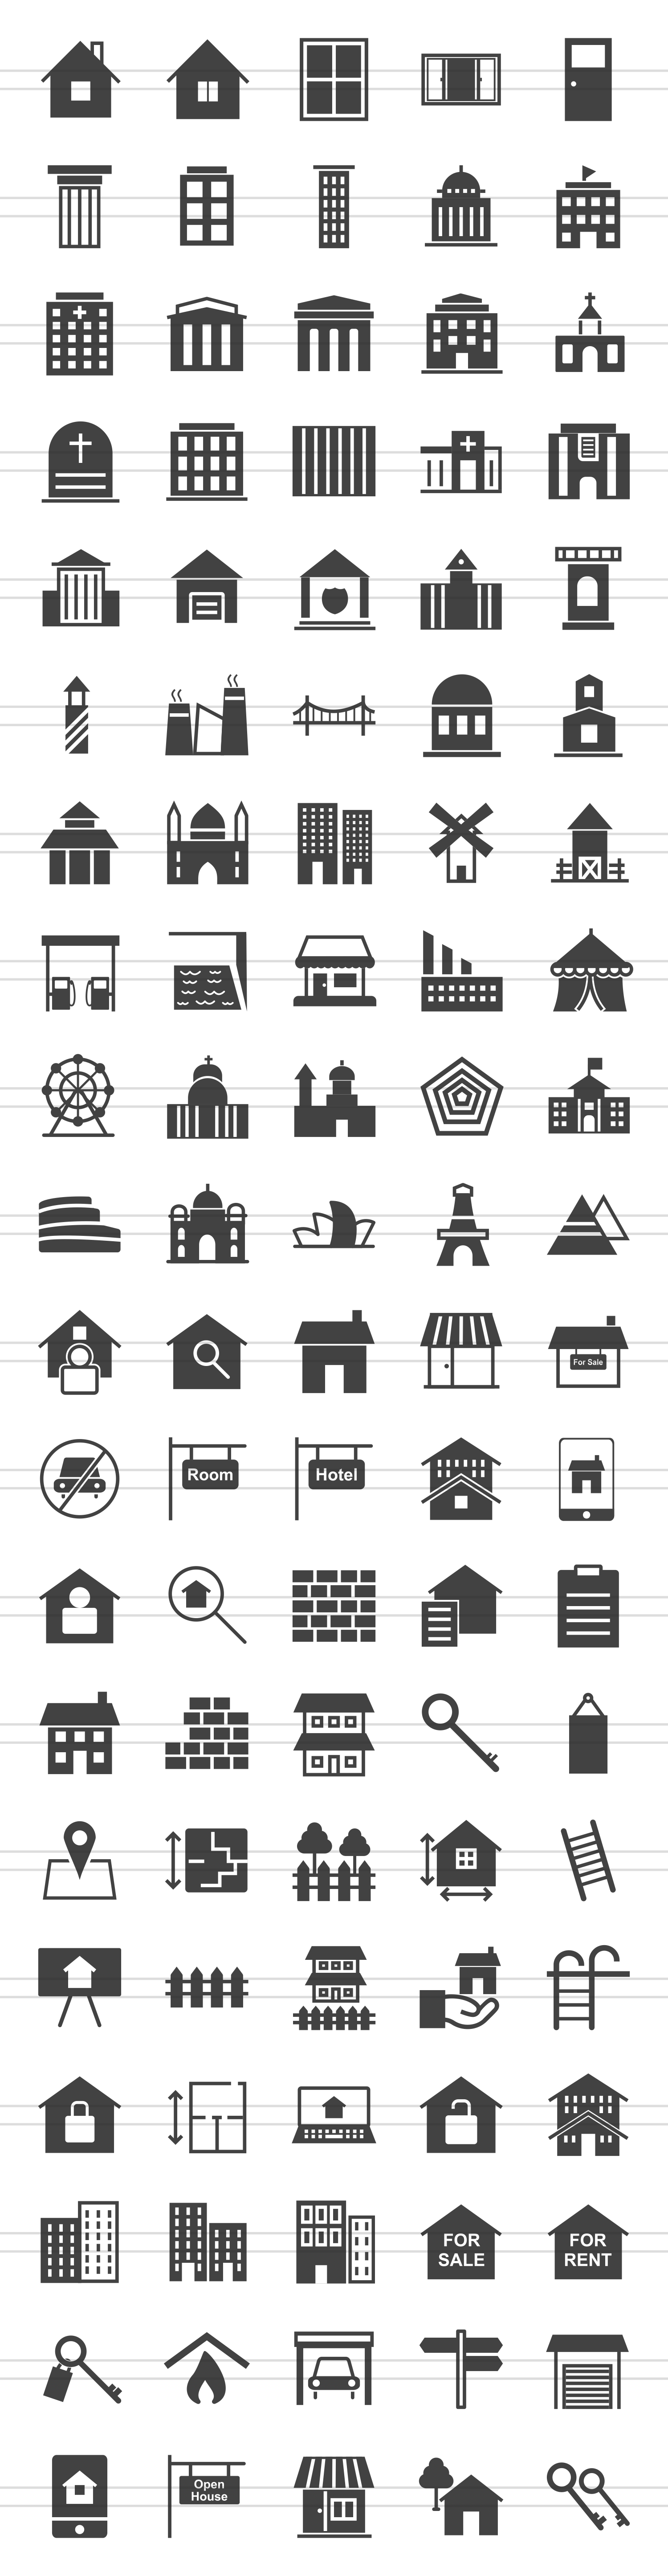 100 Building & Landmarks Glyph Icons example image 2